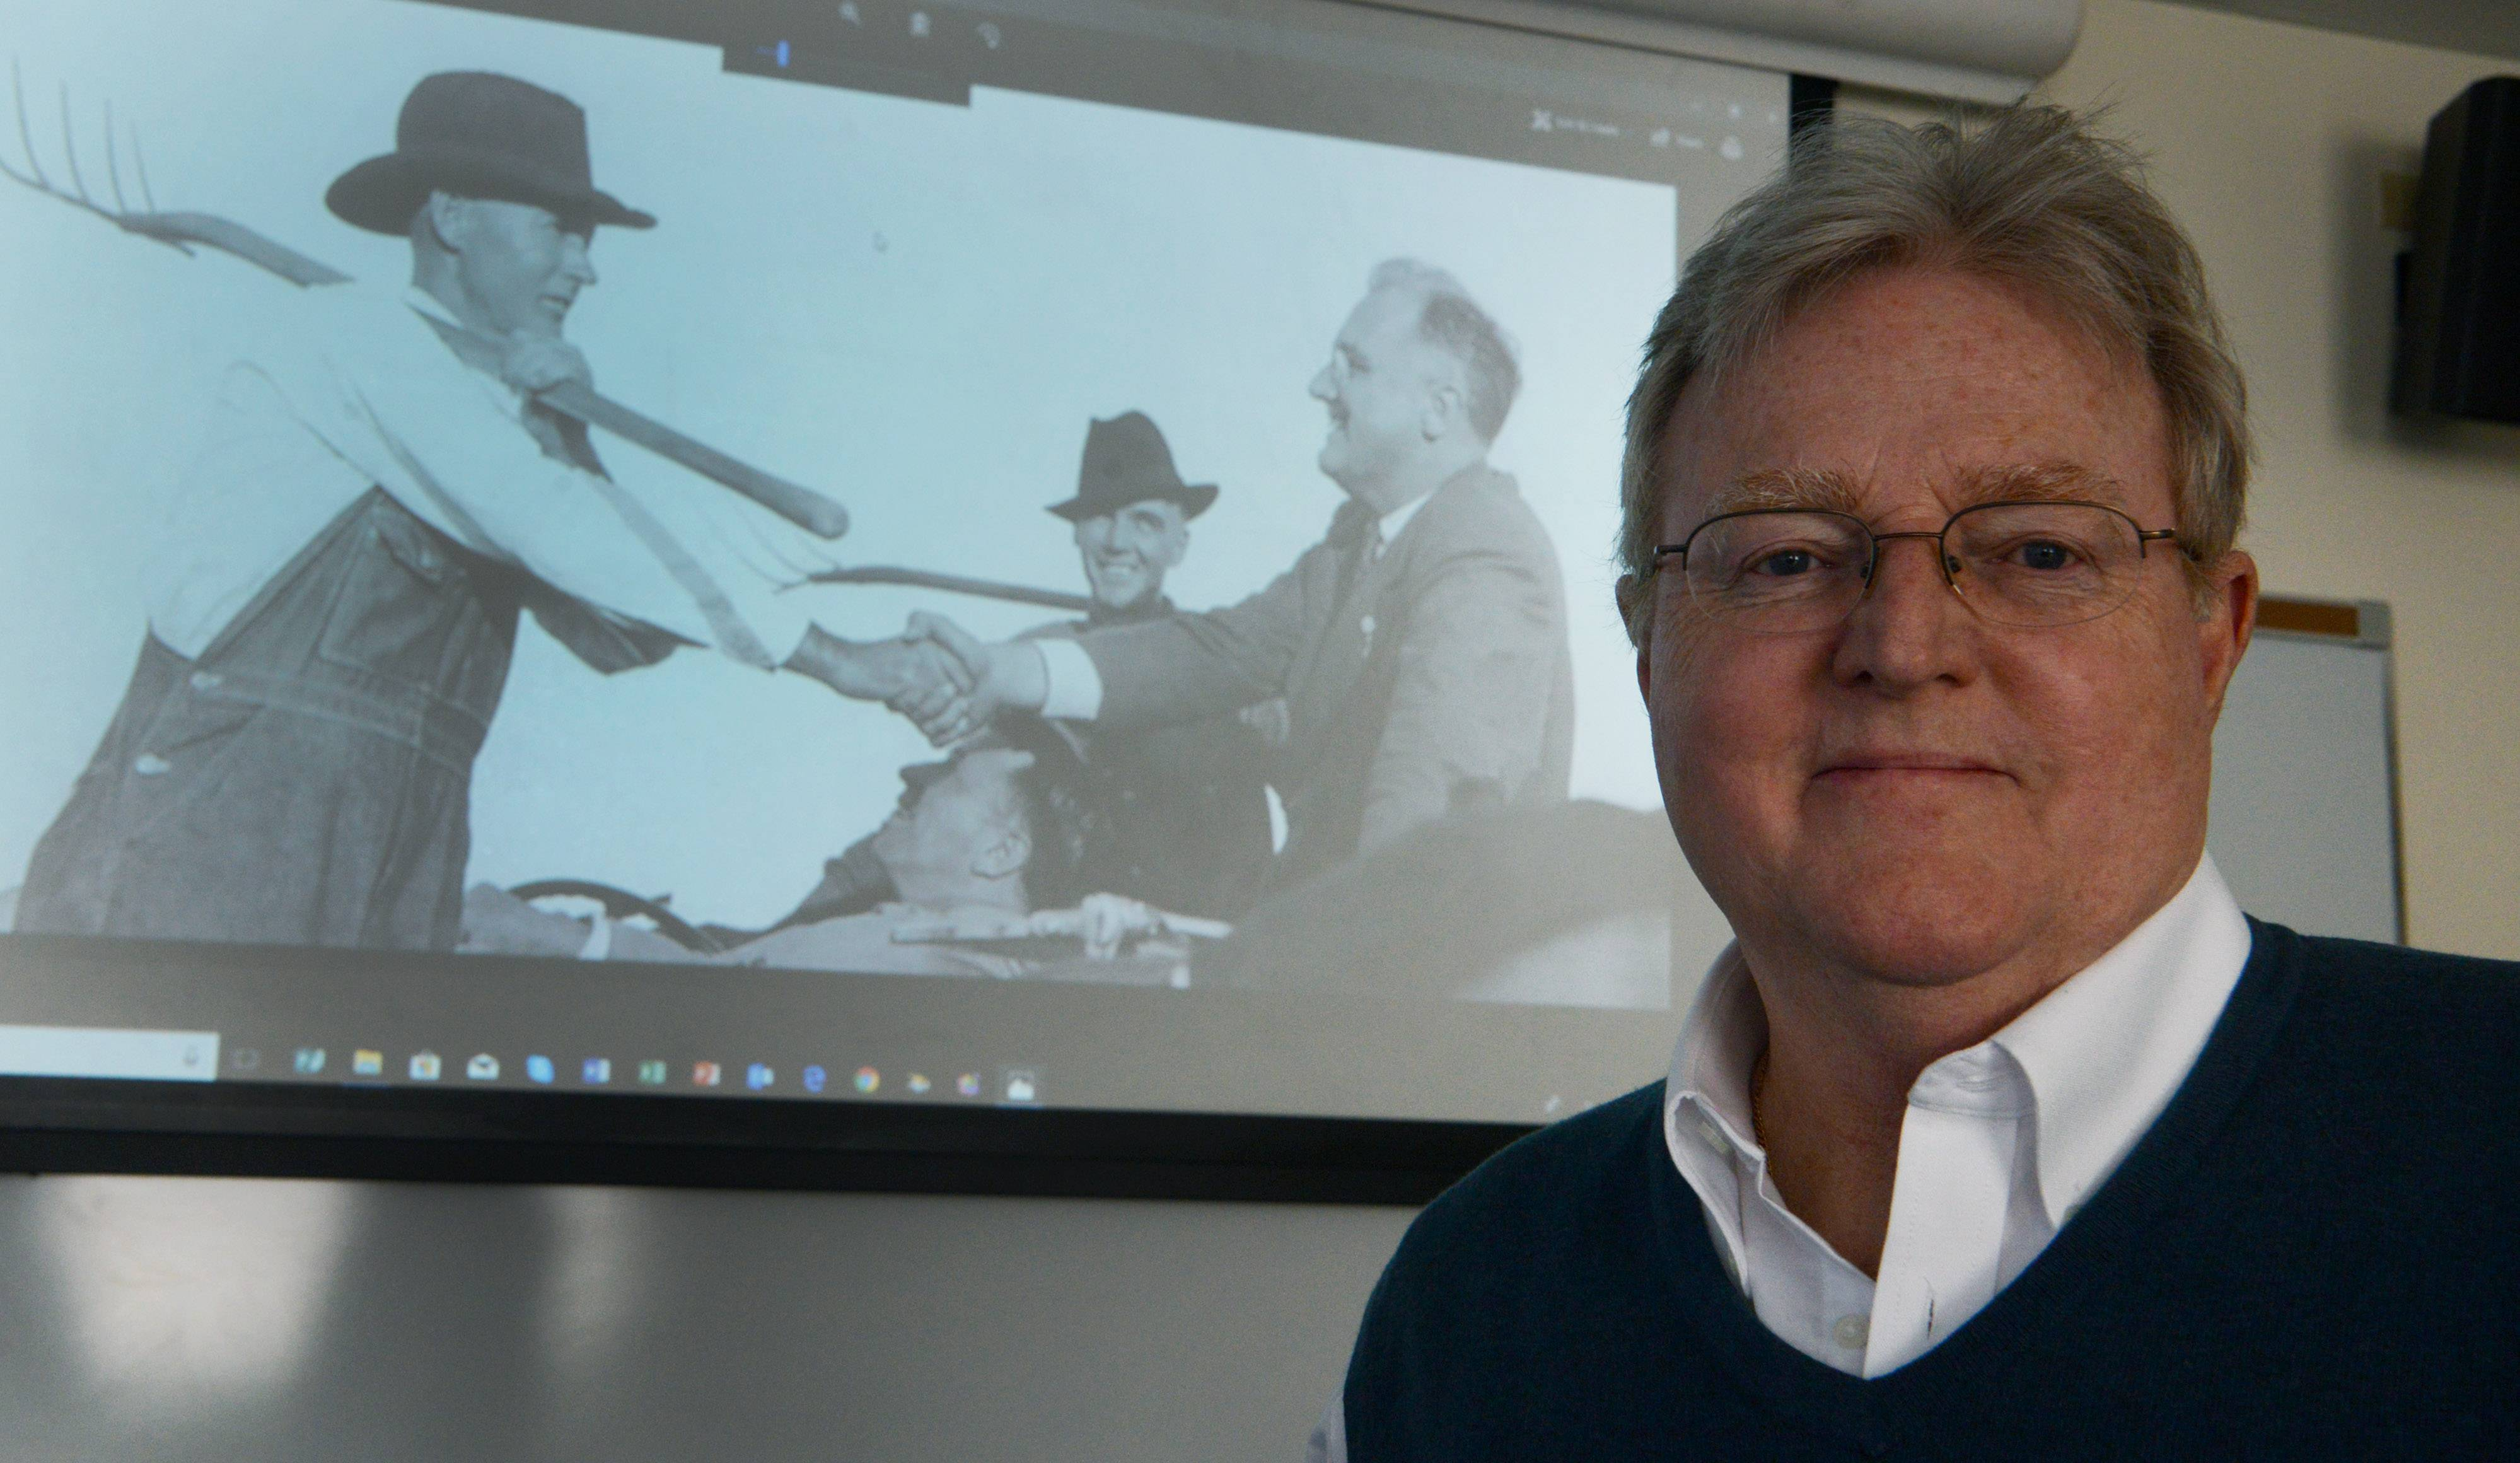 John LeGear's fascination with people's lives during the Great Depression led him to create a video montage of historic photos, points of history and music. Then, he kept going -- expanding it to a three-hour presentation covering 100 years that will be presented at Harper College in two parts Feb. 2 and Feb. 9.